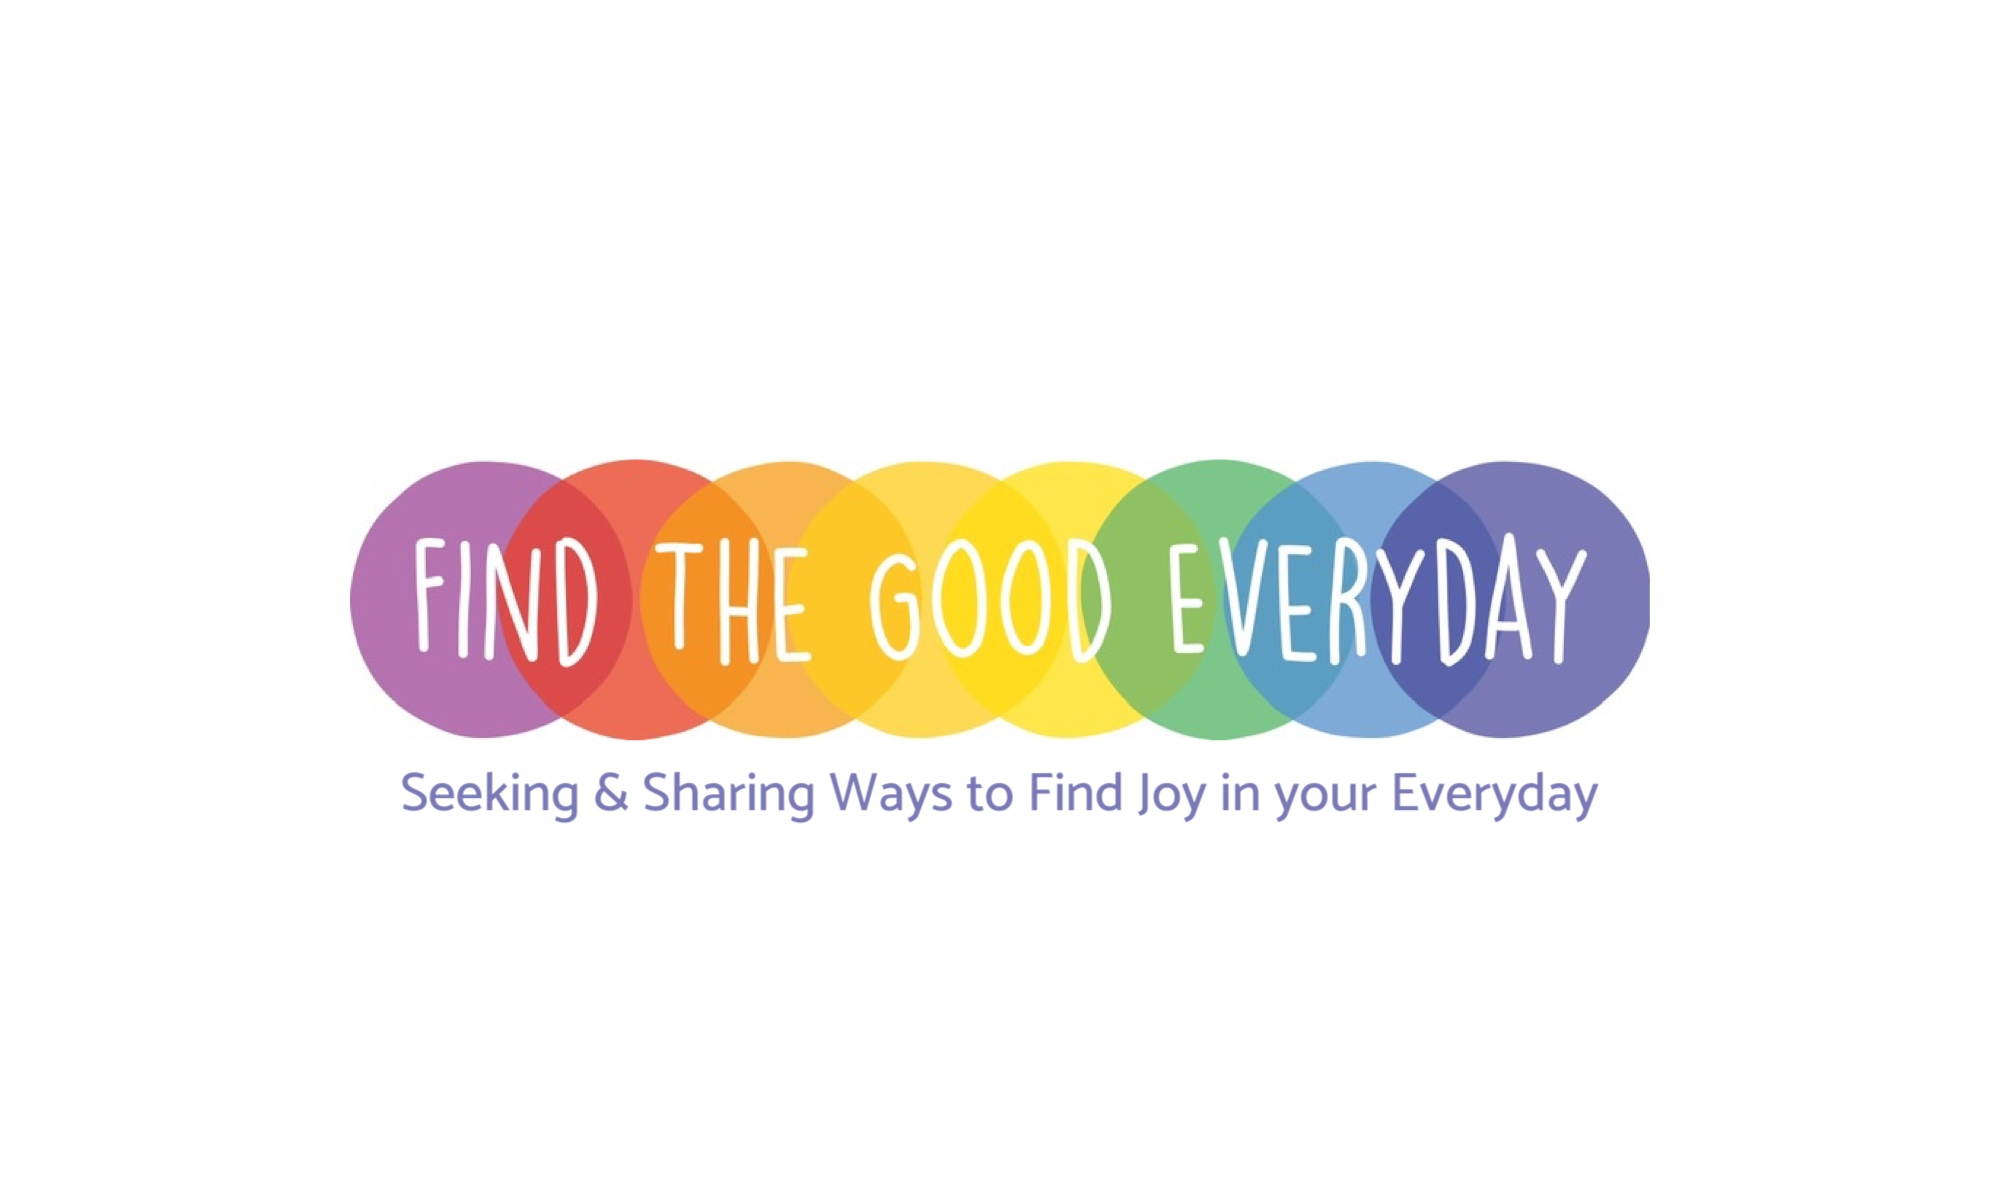 Find the Good Everyday